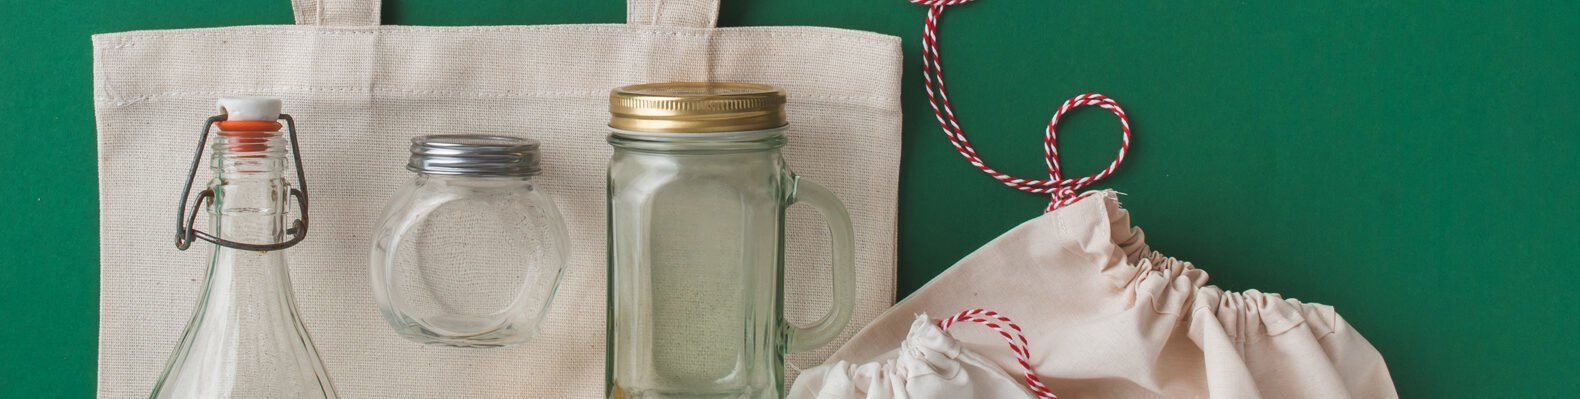 glass jars and cloth bags on green background